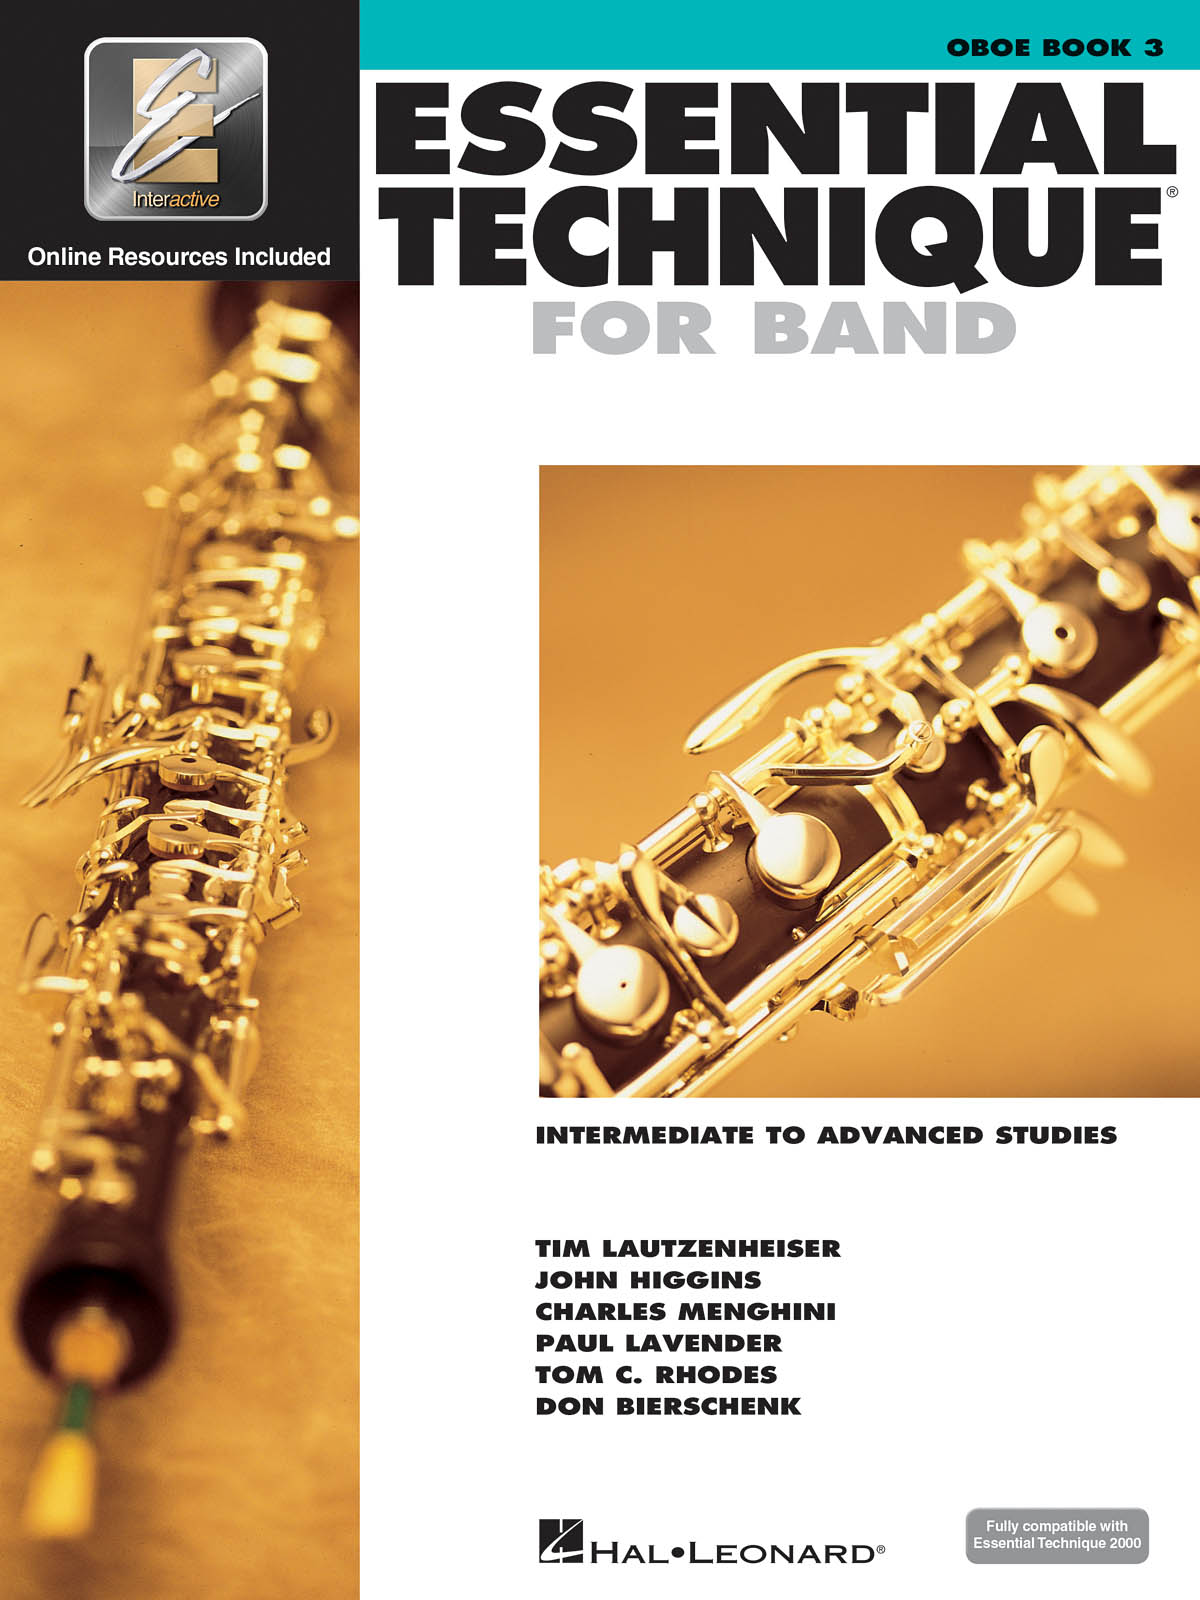 Essential Elements for Band - Book 3 - Oboe: Oboe Solo: Book & Audio